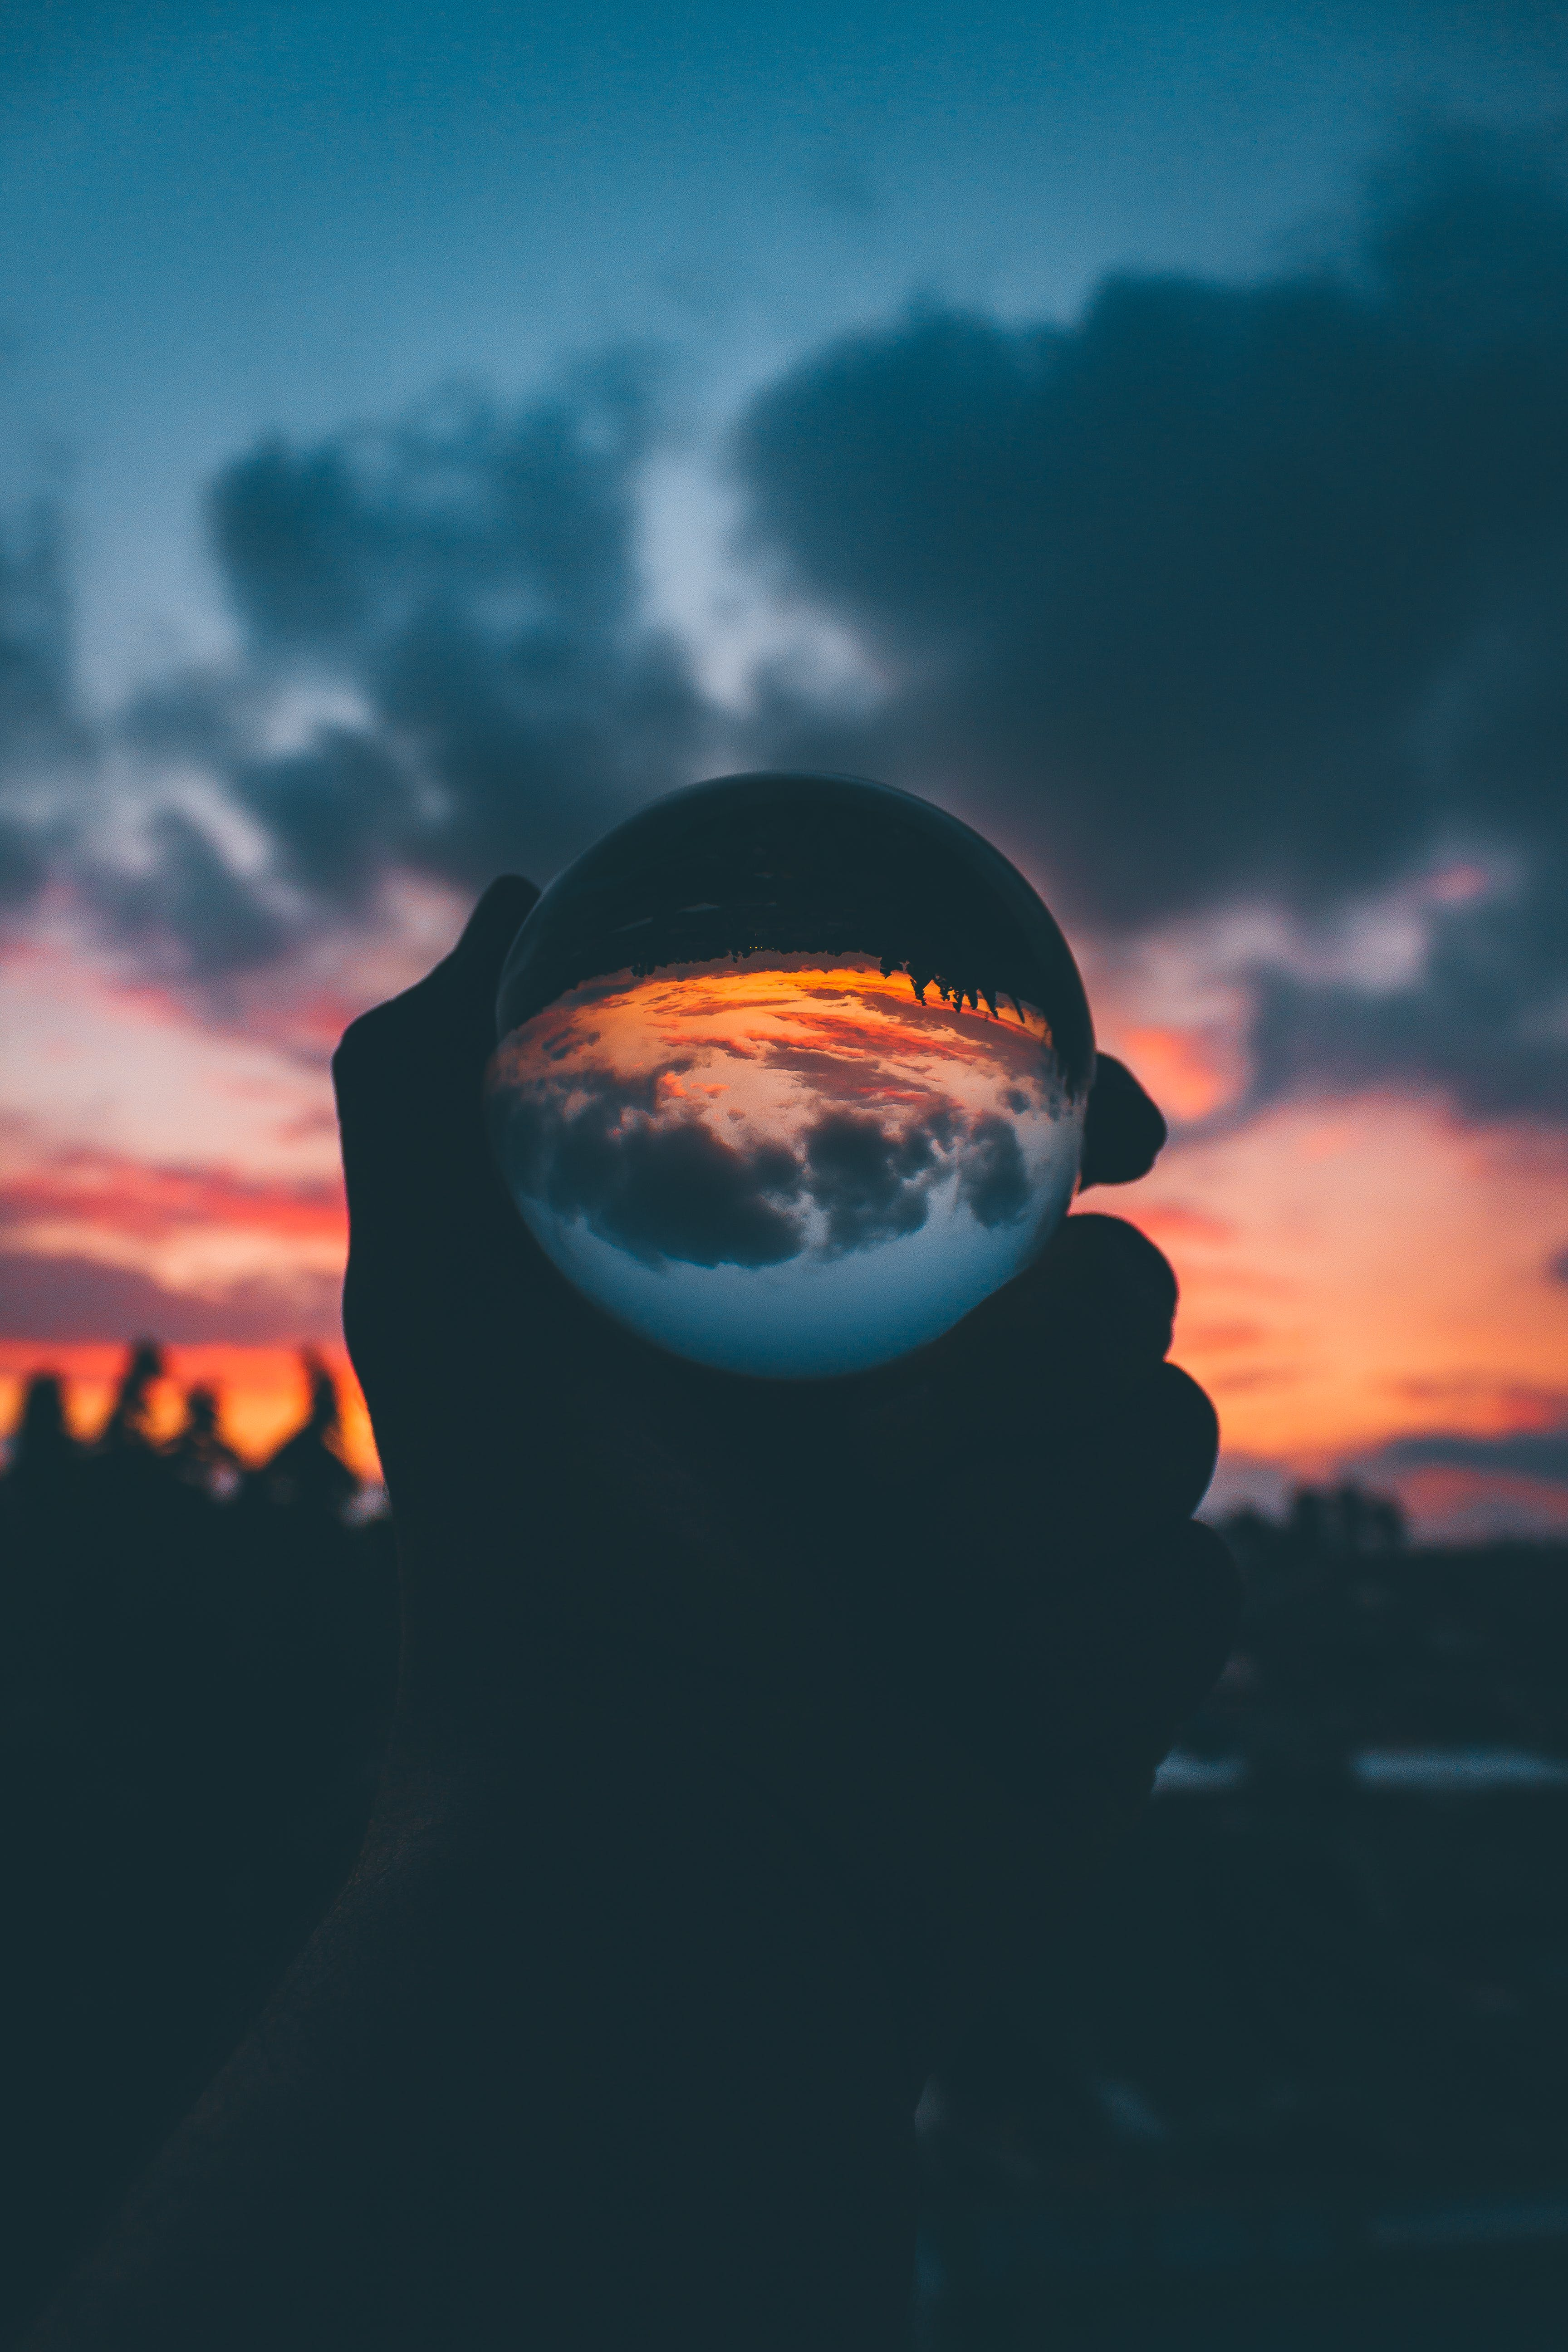 Person Holding Lensball During Golden Hour